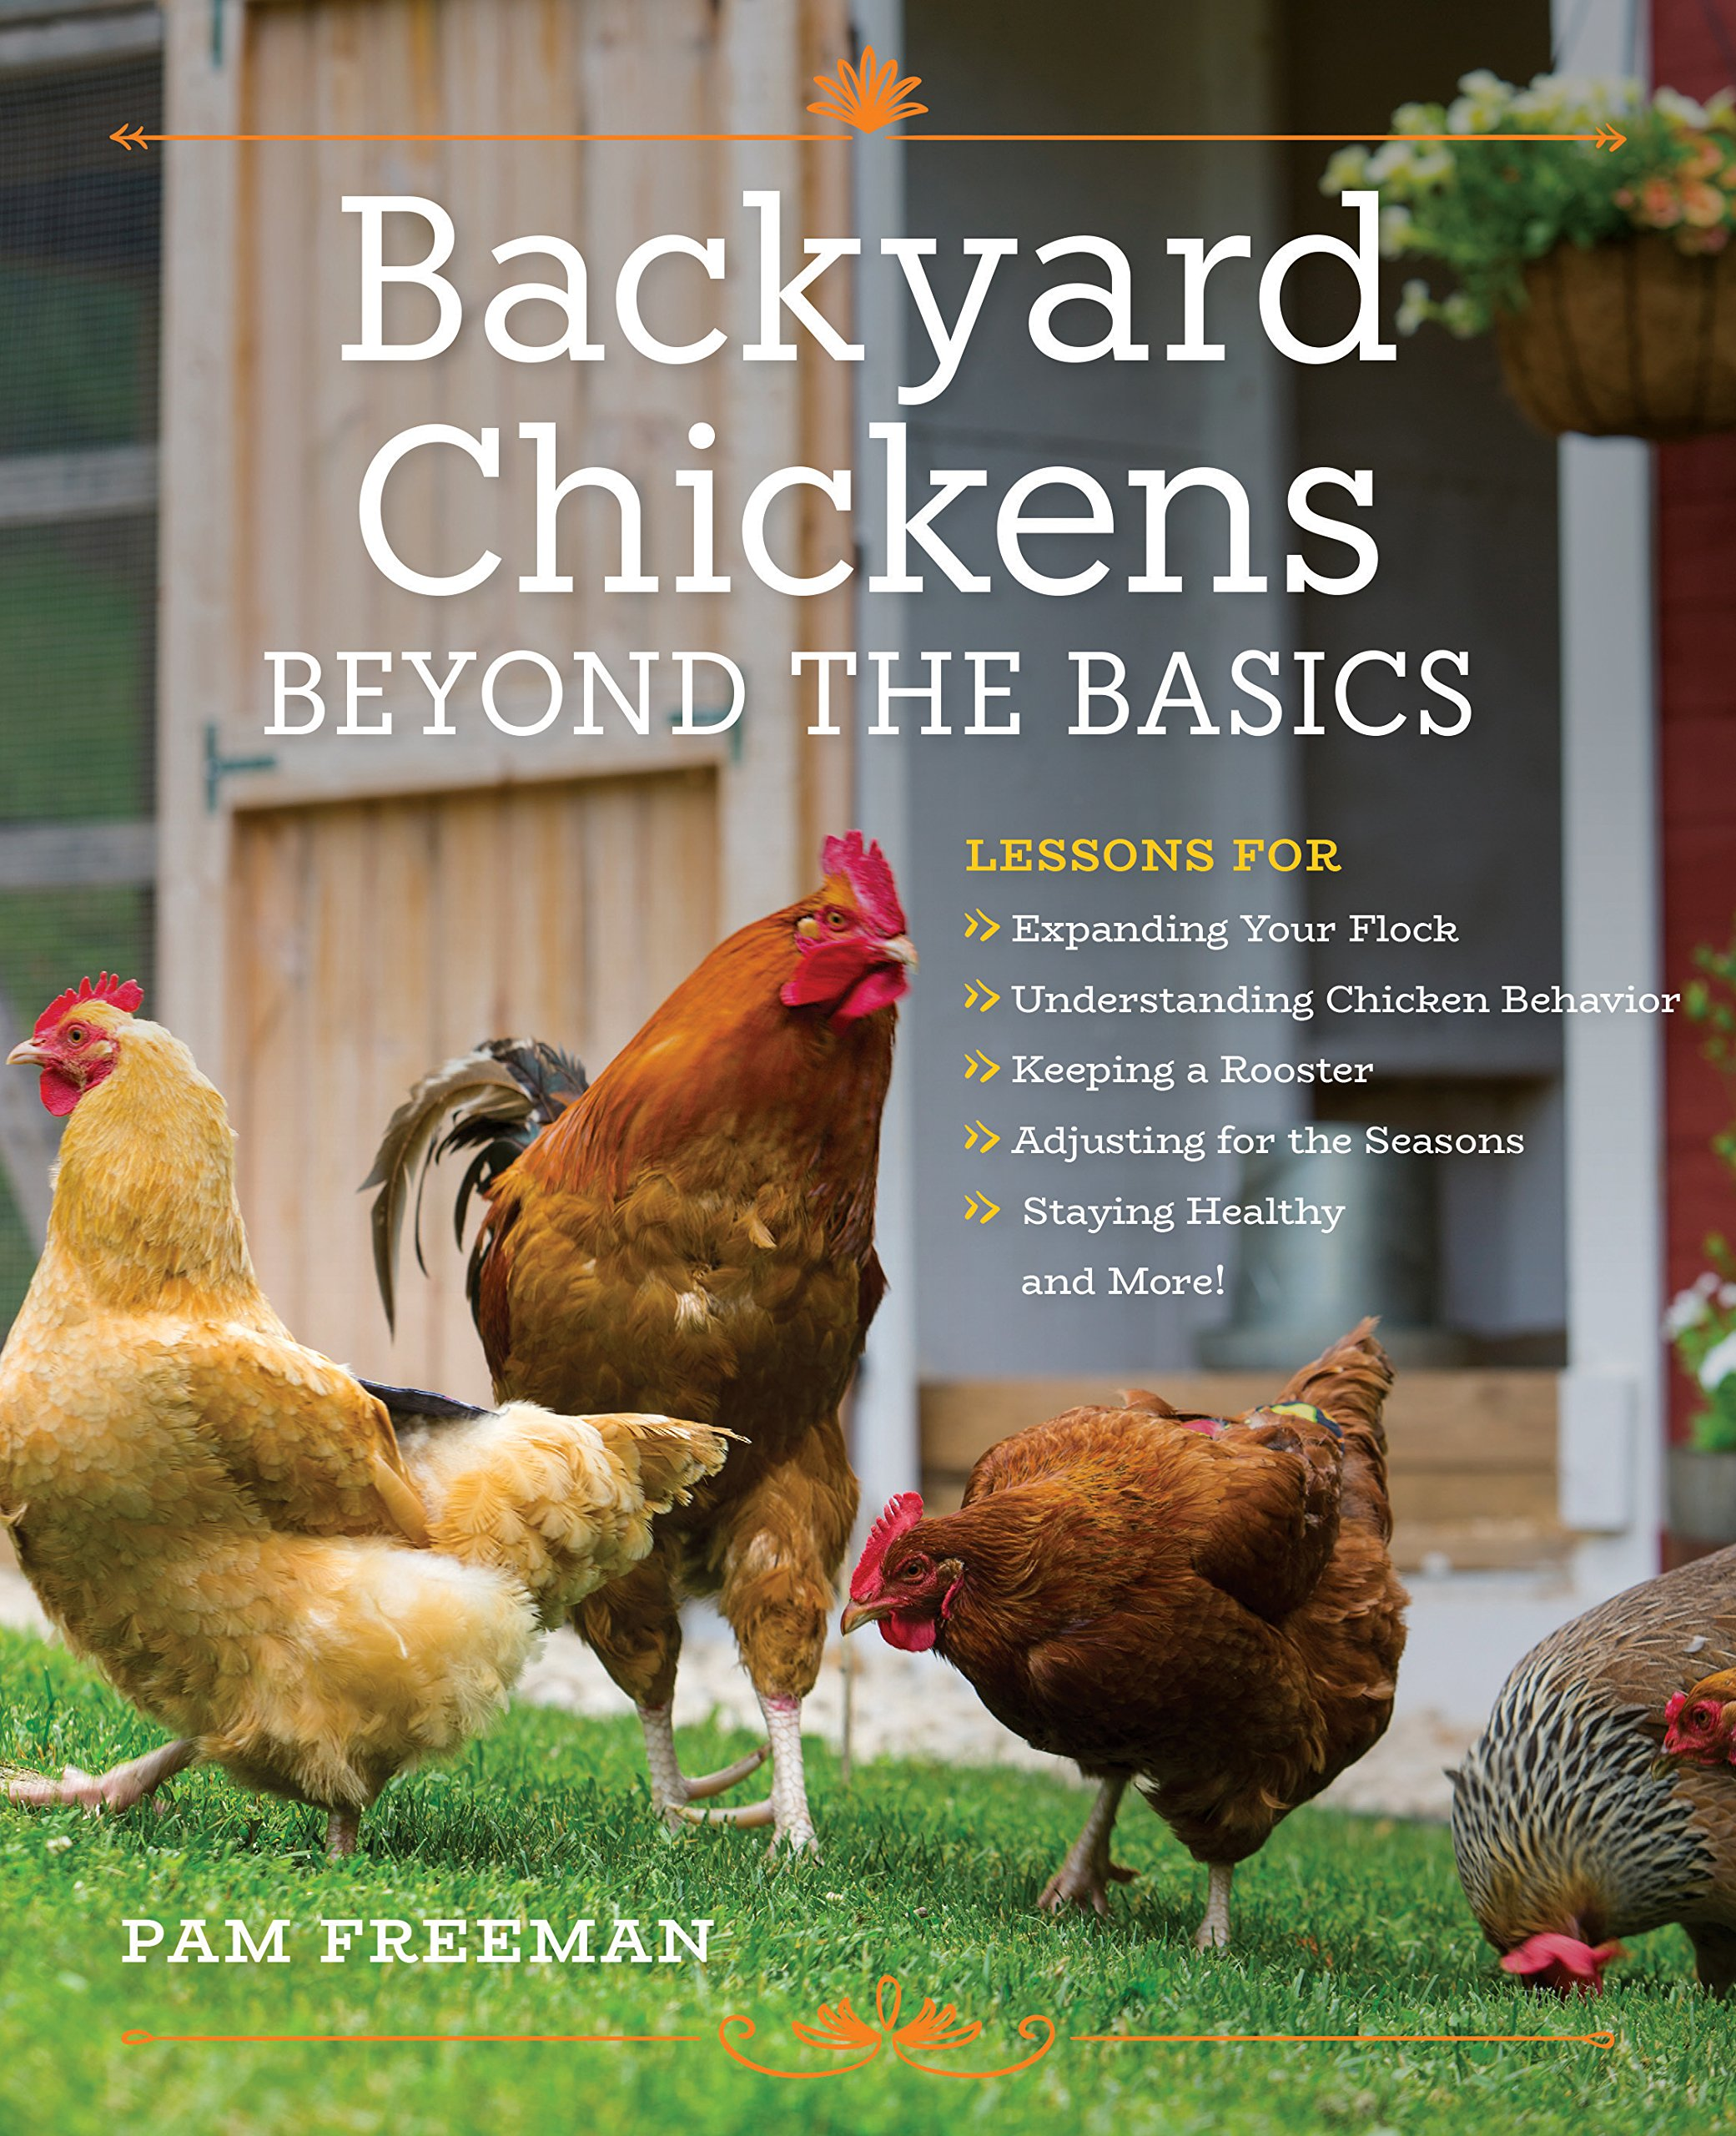 Backyard Chickens Beyond the Basics: Lessons for Expanding Your Flock,  Understanding Chicken Behavior, Keeping a Rooster, Adjusting for the  Seasons, ...